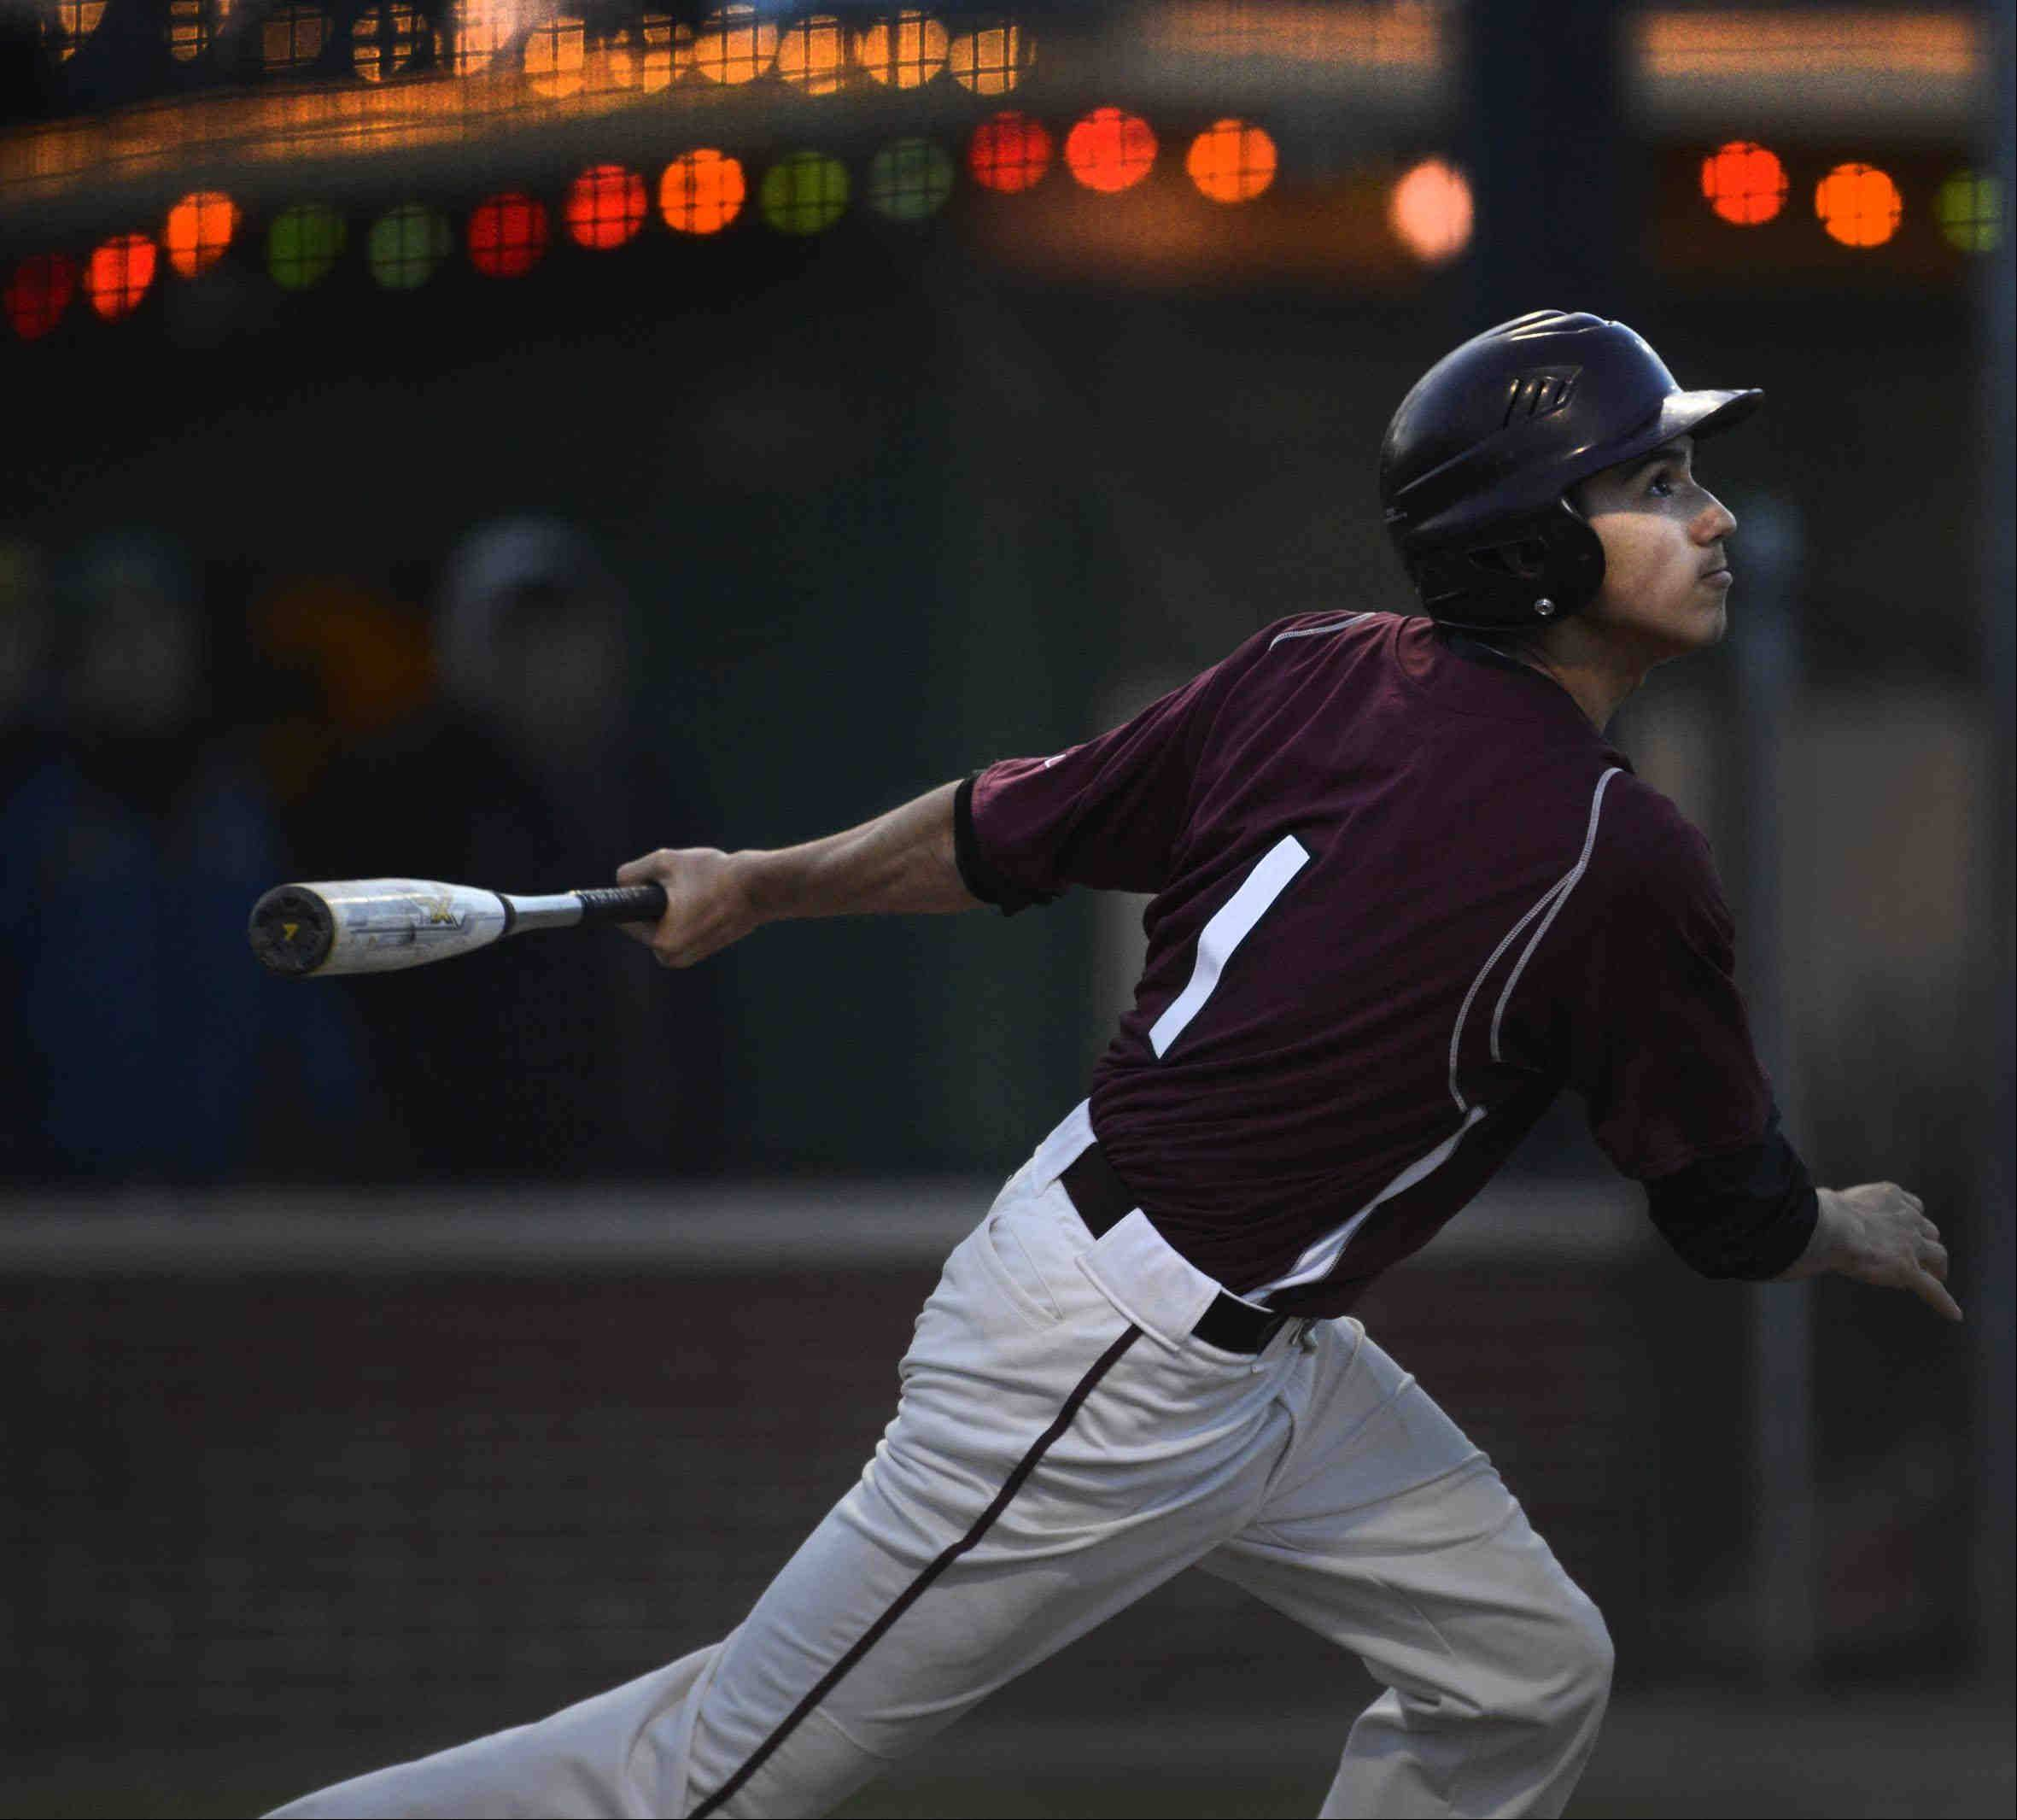 Elgin's Omar Valadez hits a two-run double in the sixth inning against Larkin Thursday at Trout Park in Elgin.